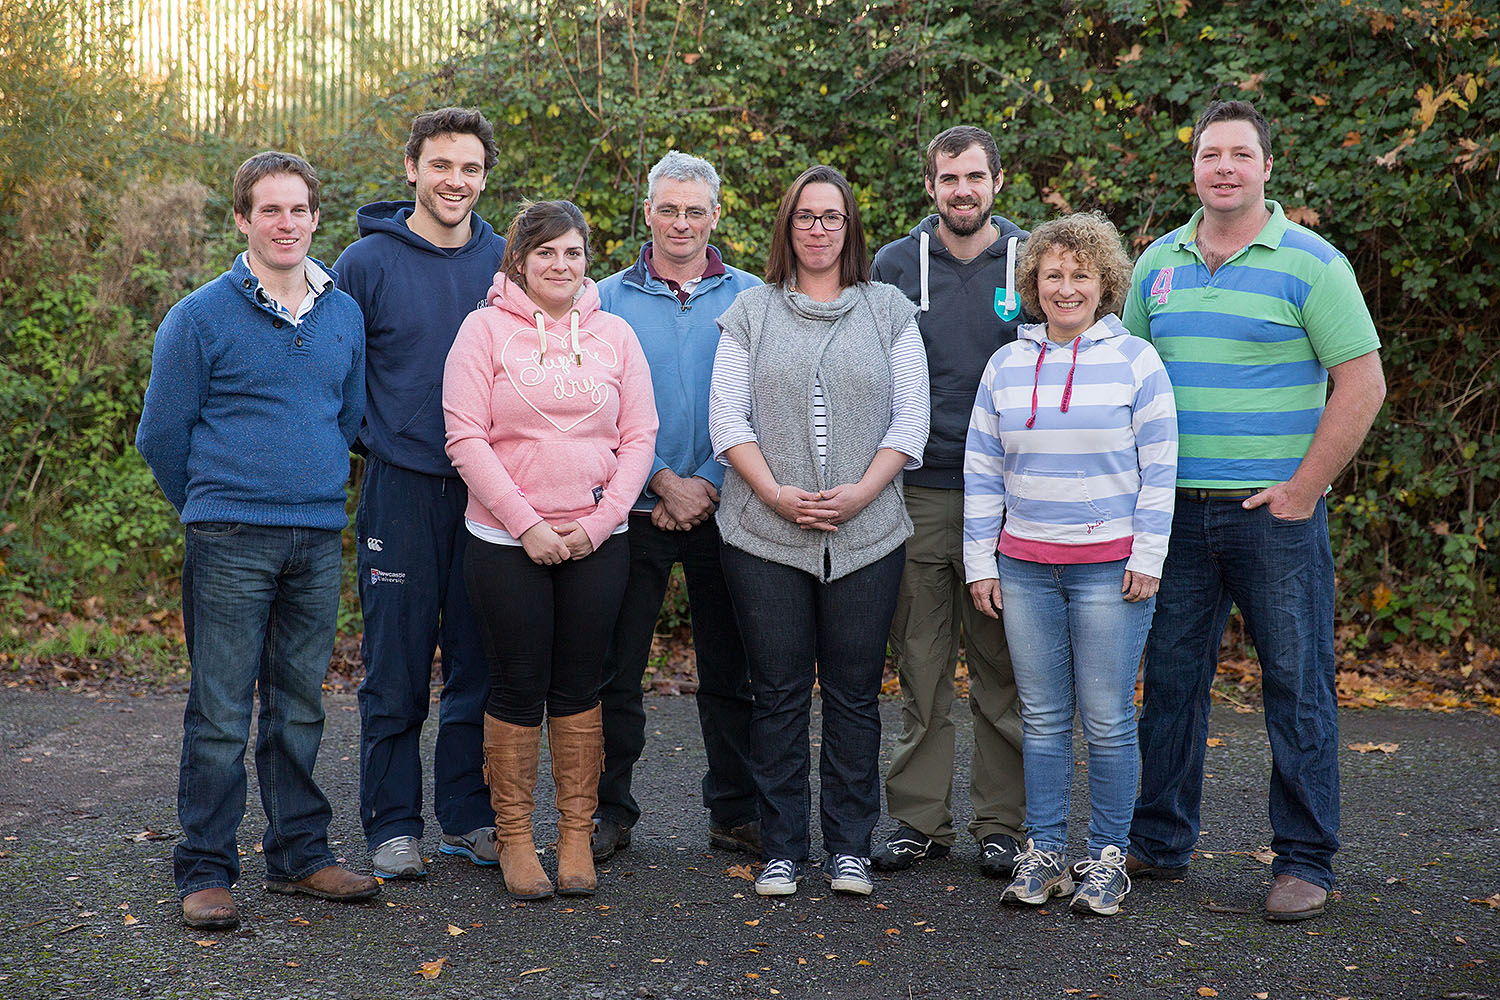 Students from the course at Bridgwater College, Cannington Centre, Somerset